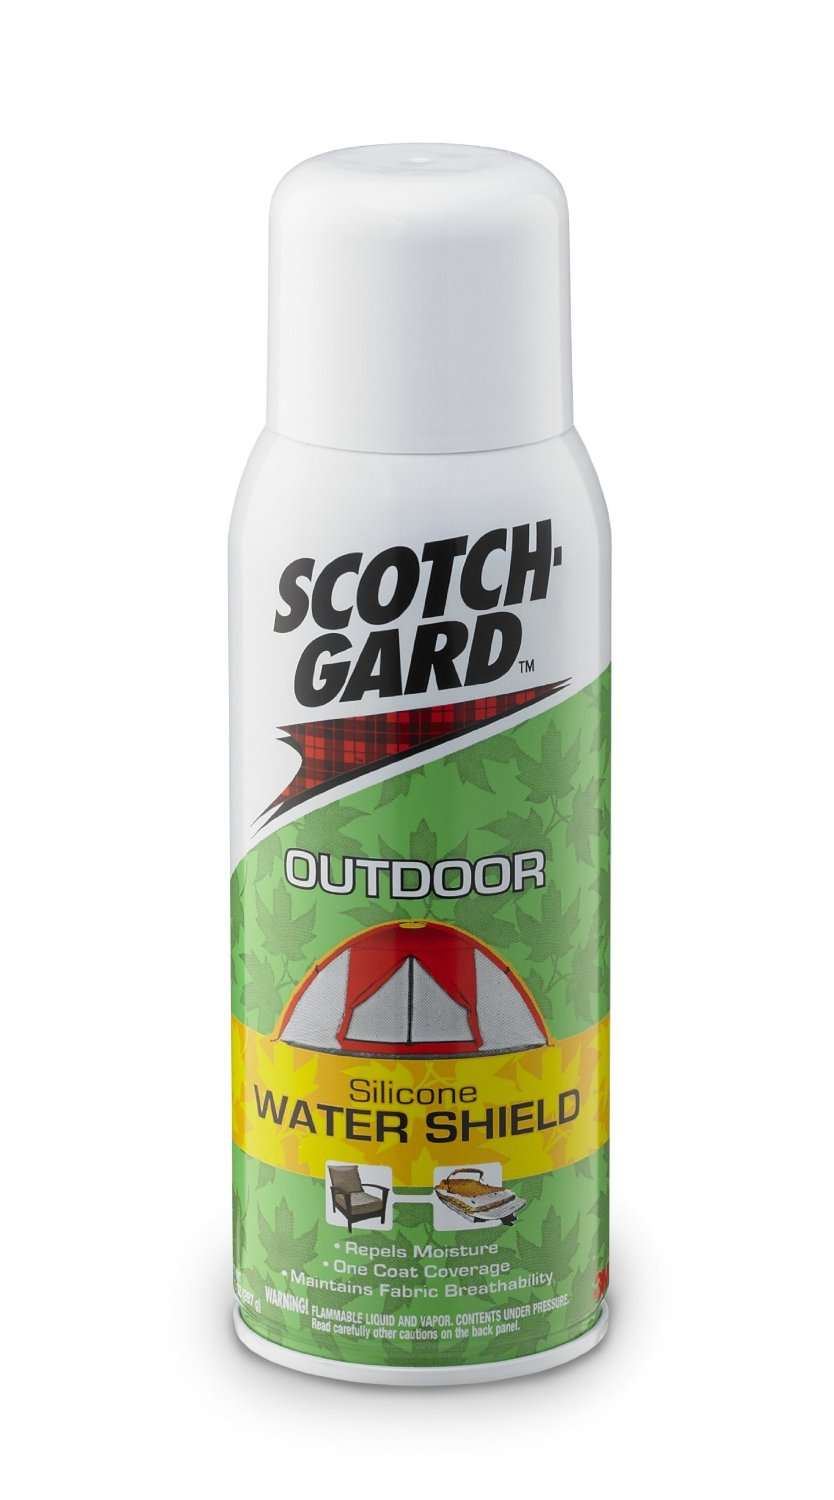 scotchgard outdoor water shield instructions